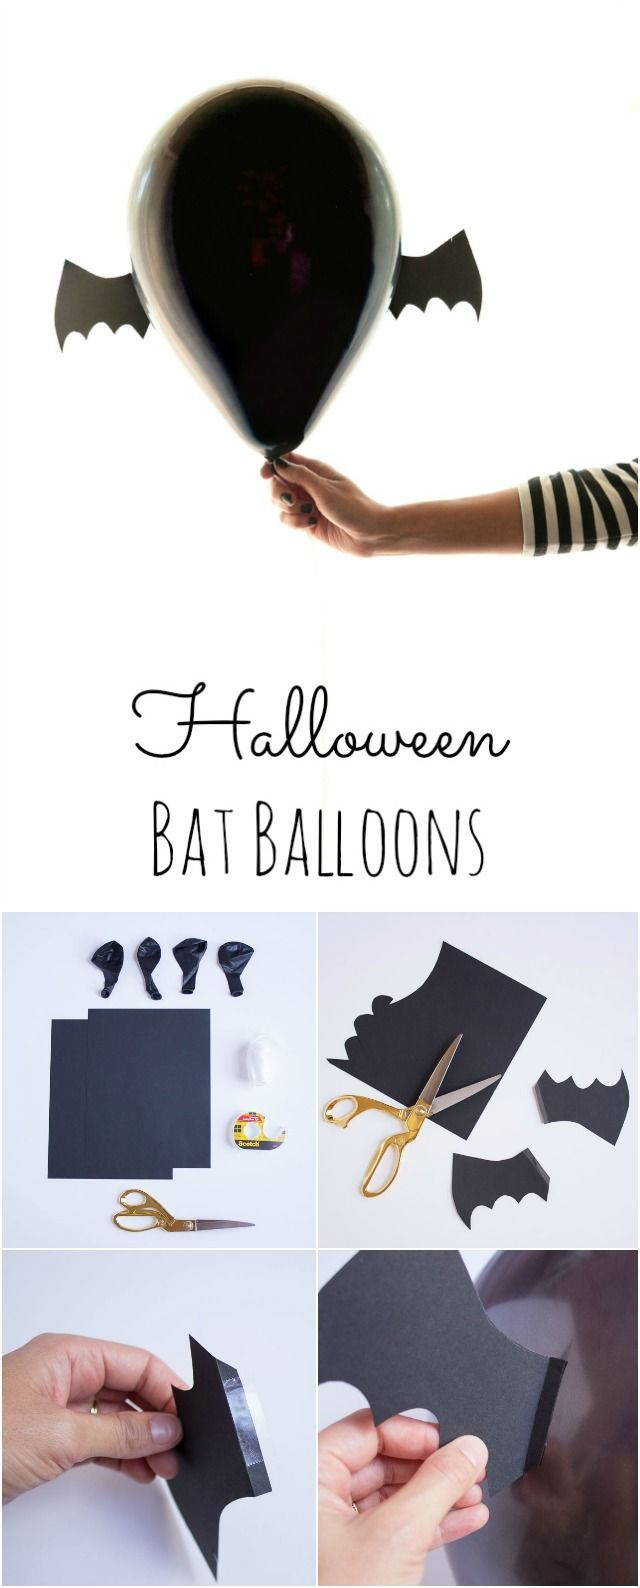 Transform black balloons into Halloween bats in minutes for the perfect party decor!